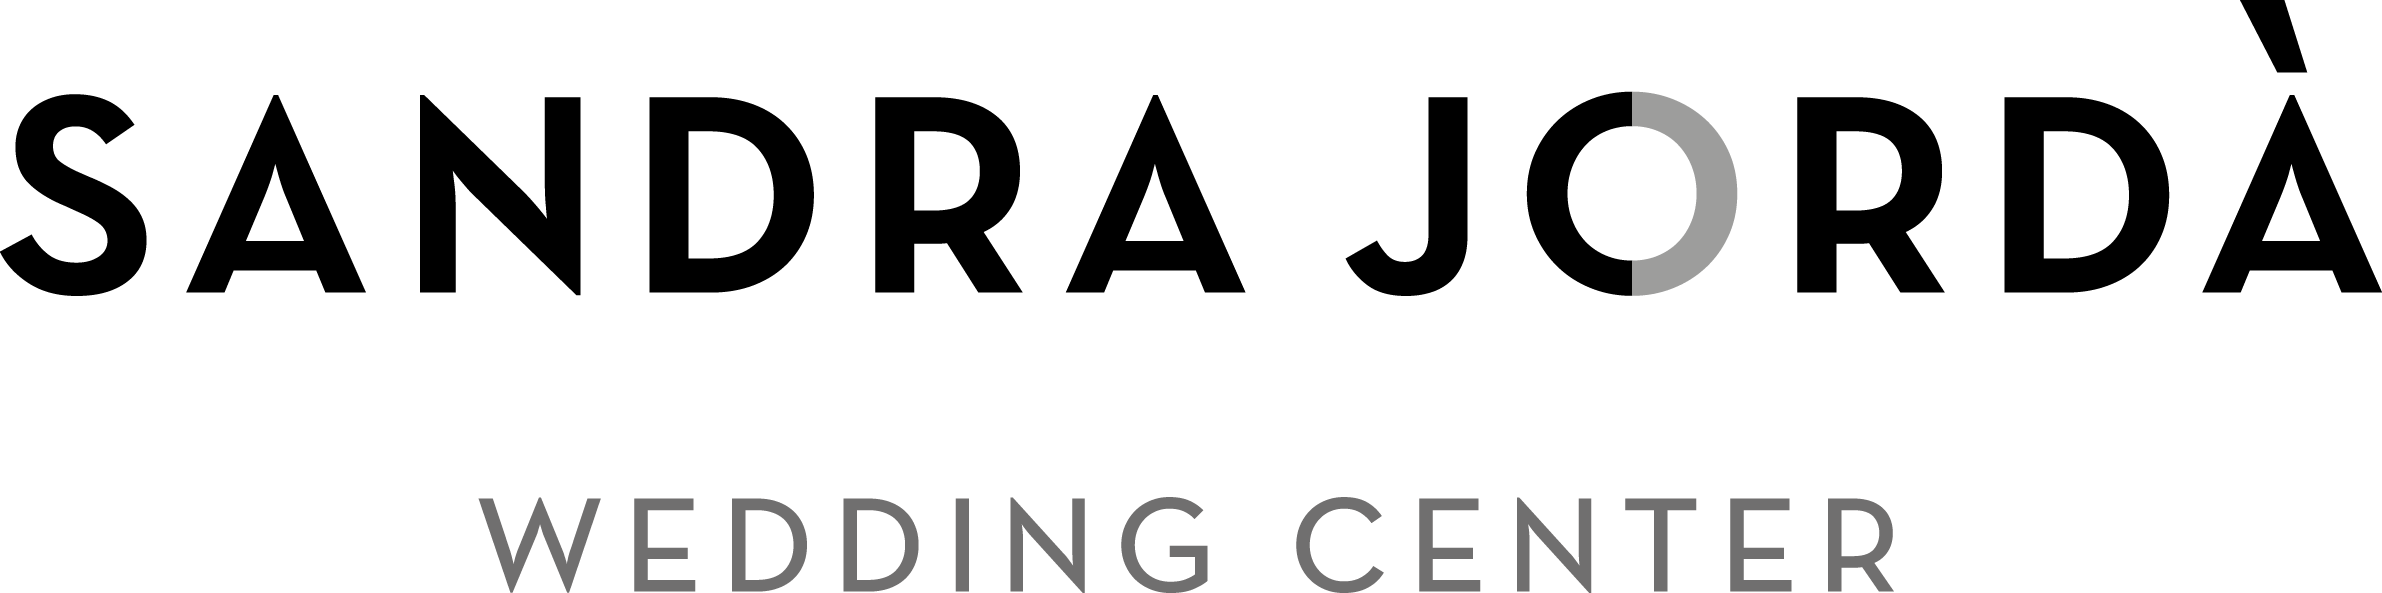 SANDRA JORDÀ WEDDING CENTER